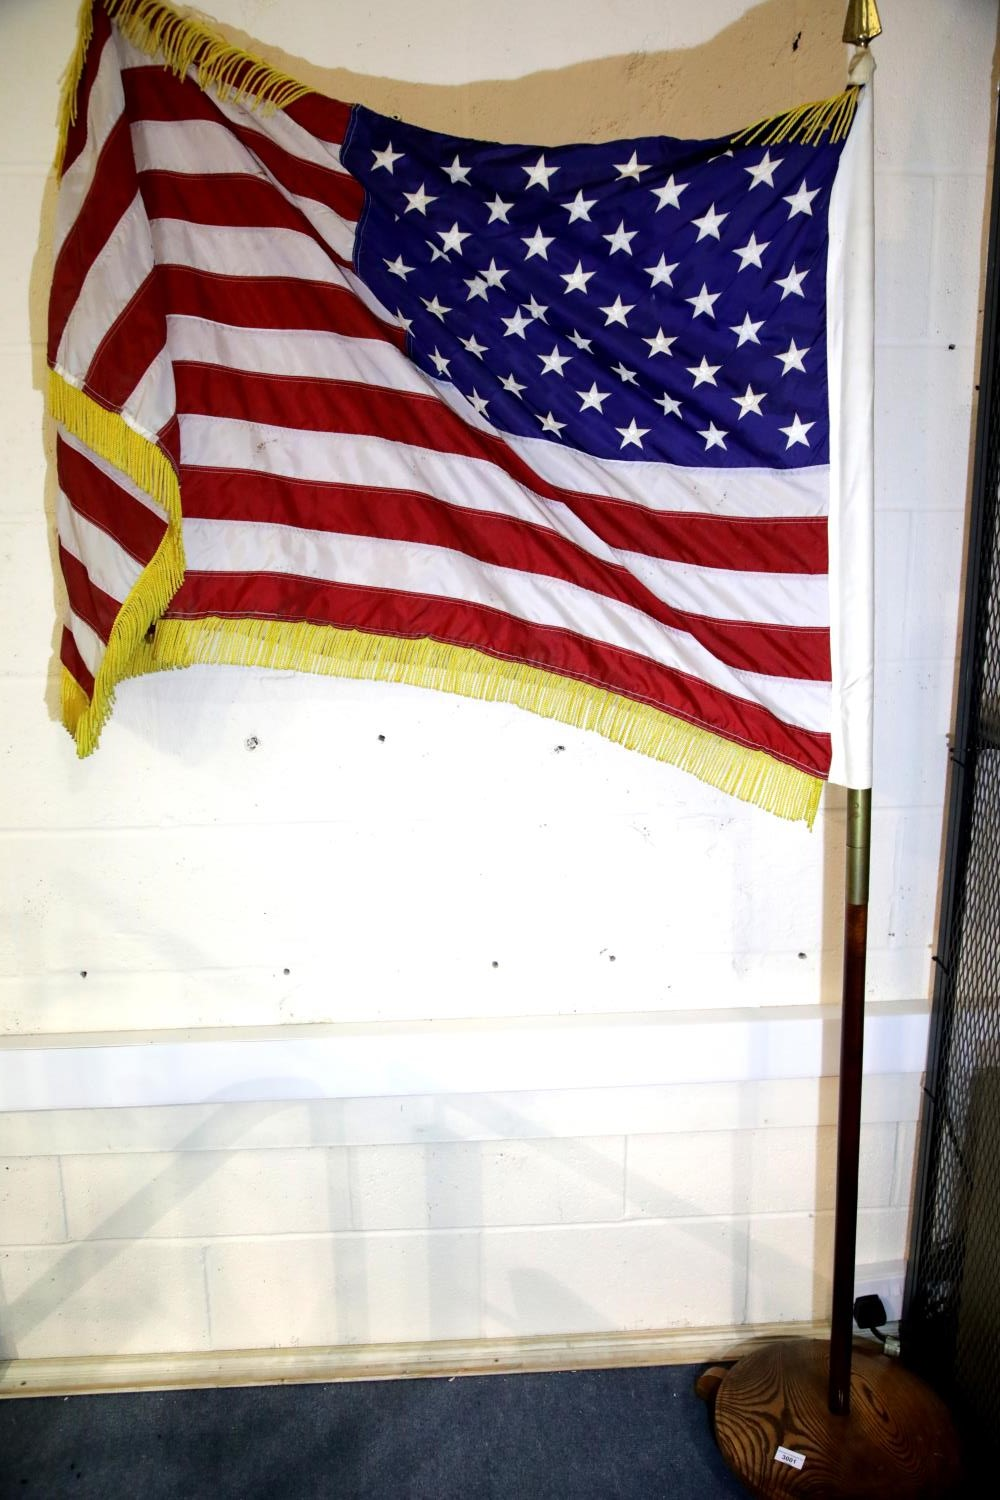 Lot 3001 - 20th century American flag having 50 stars, gold fringed and raised on a brass mounted flagpole